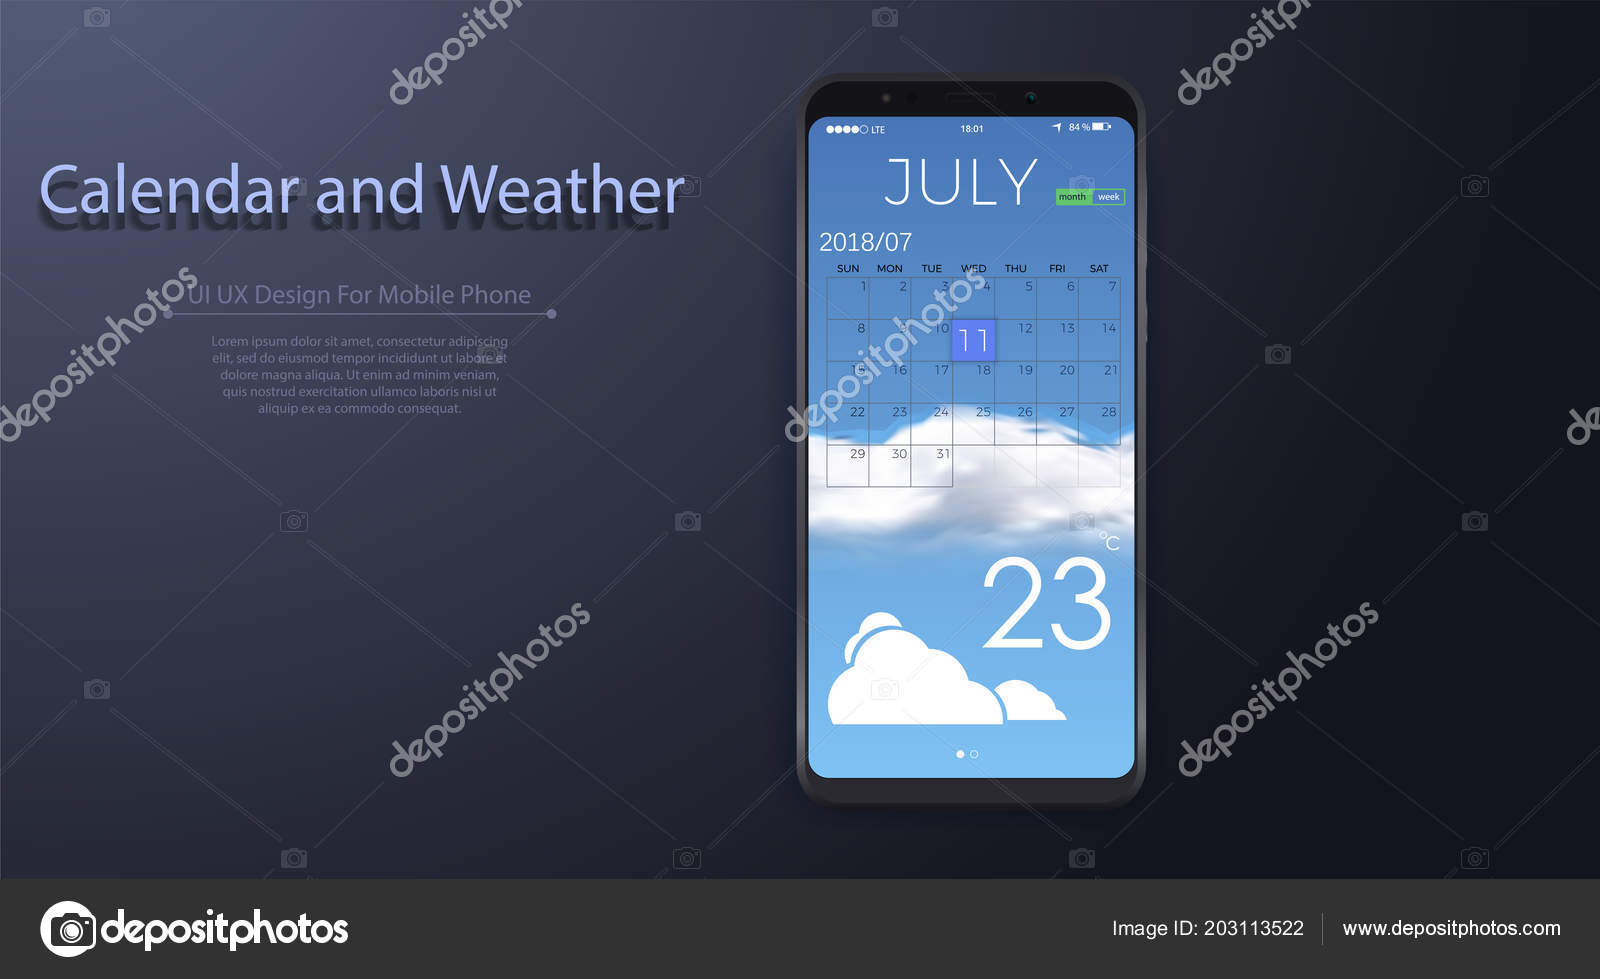 calendar and weather app with to do list and tasks ui ux design for